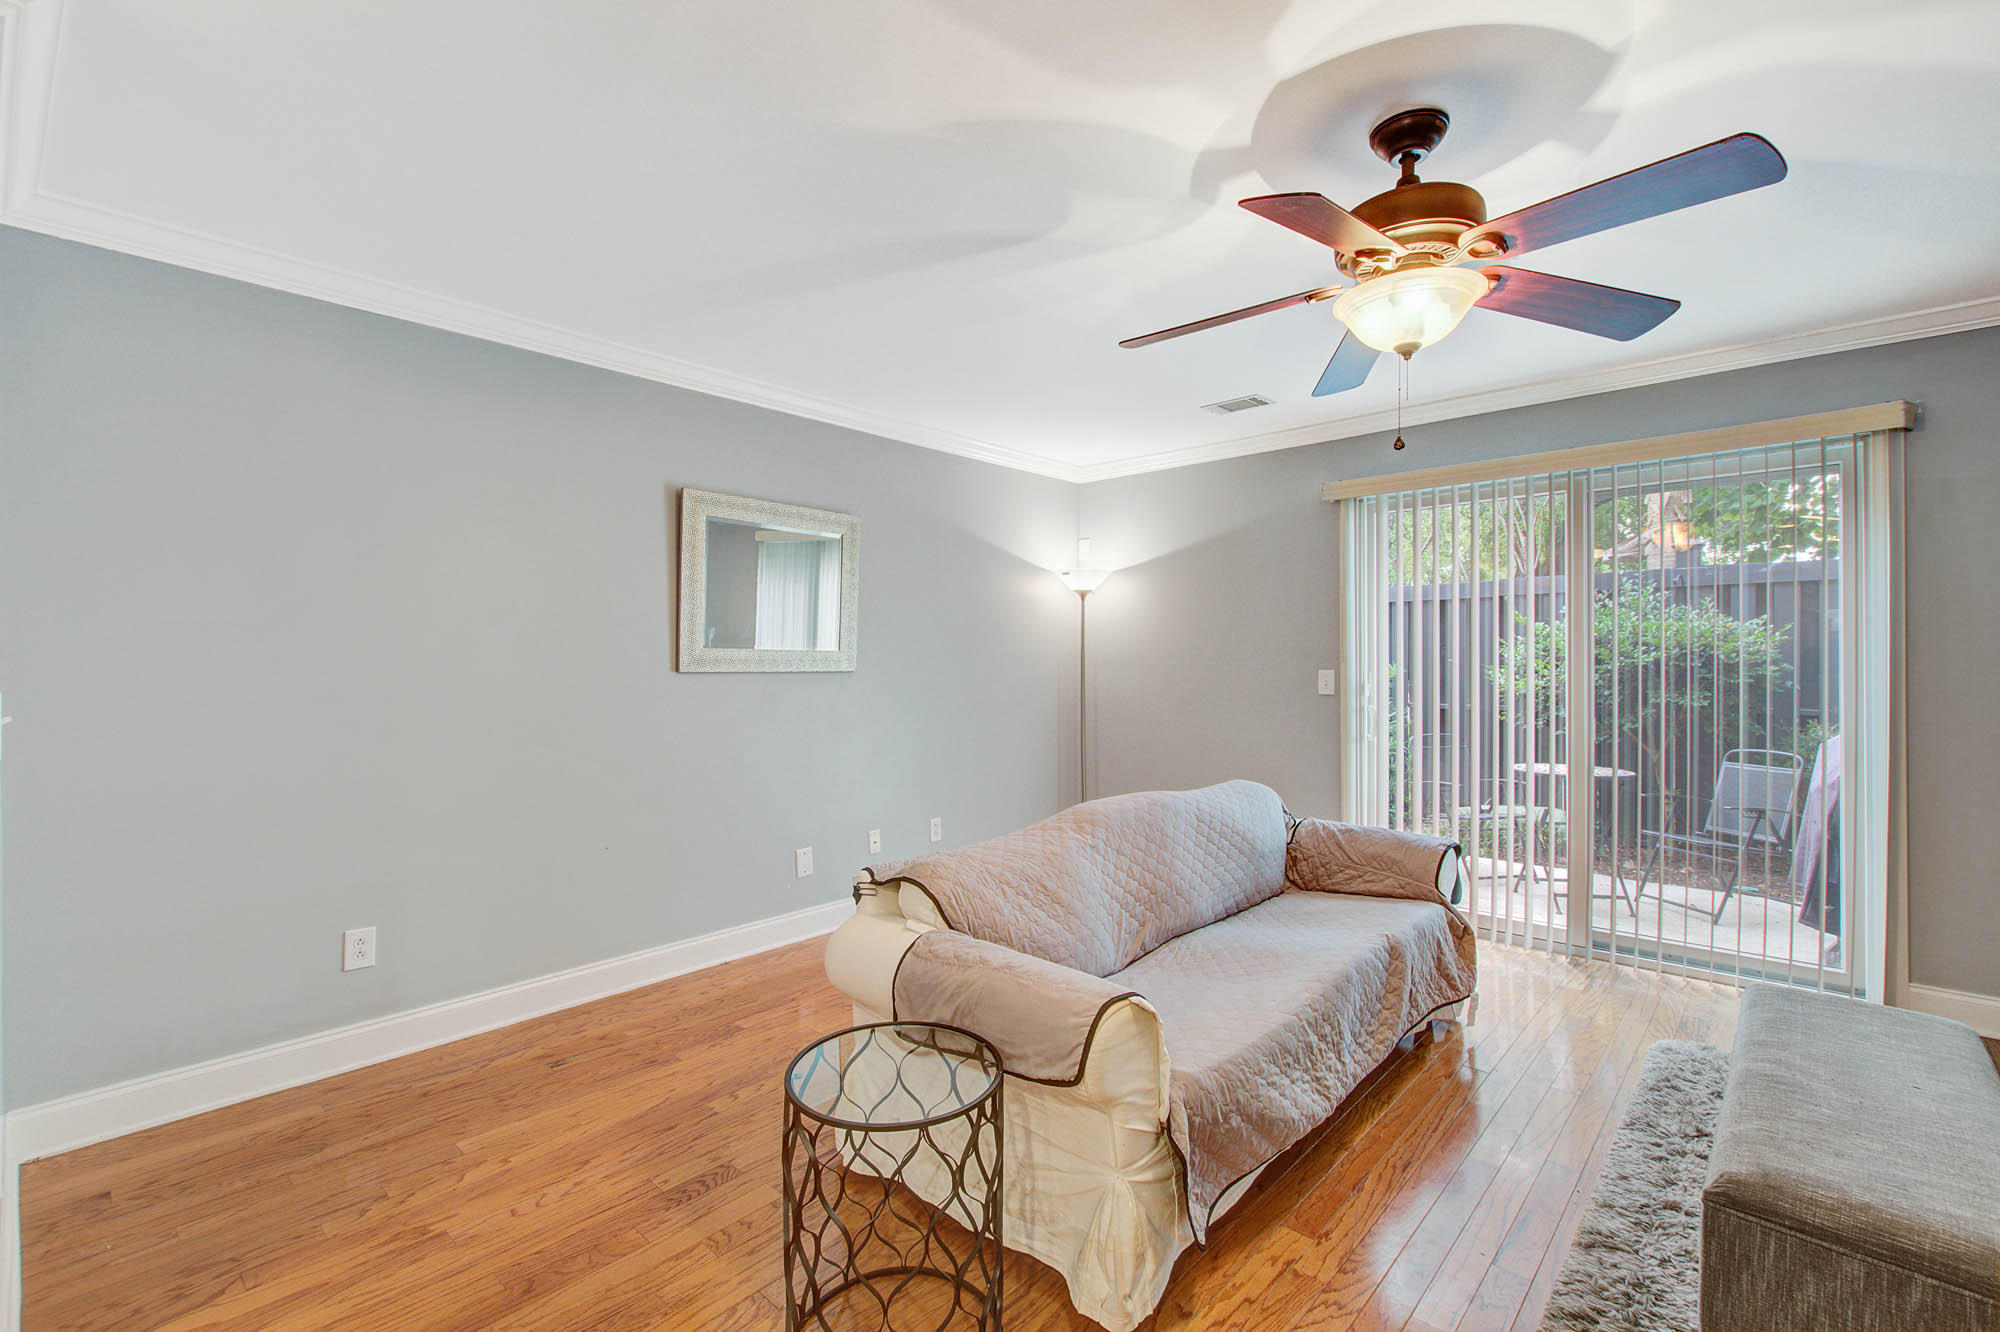 Radcliffe Place Homes For Sale - 4002 Radcliffe, Charleston, SC - 11